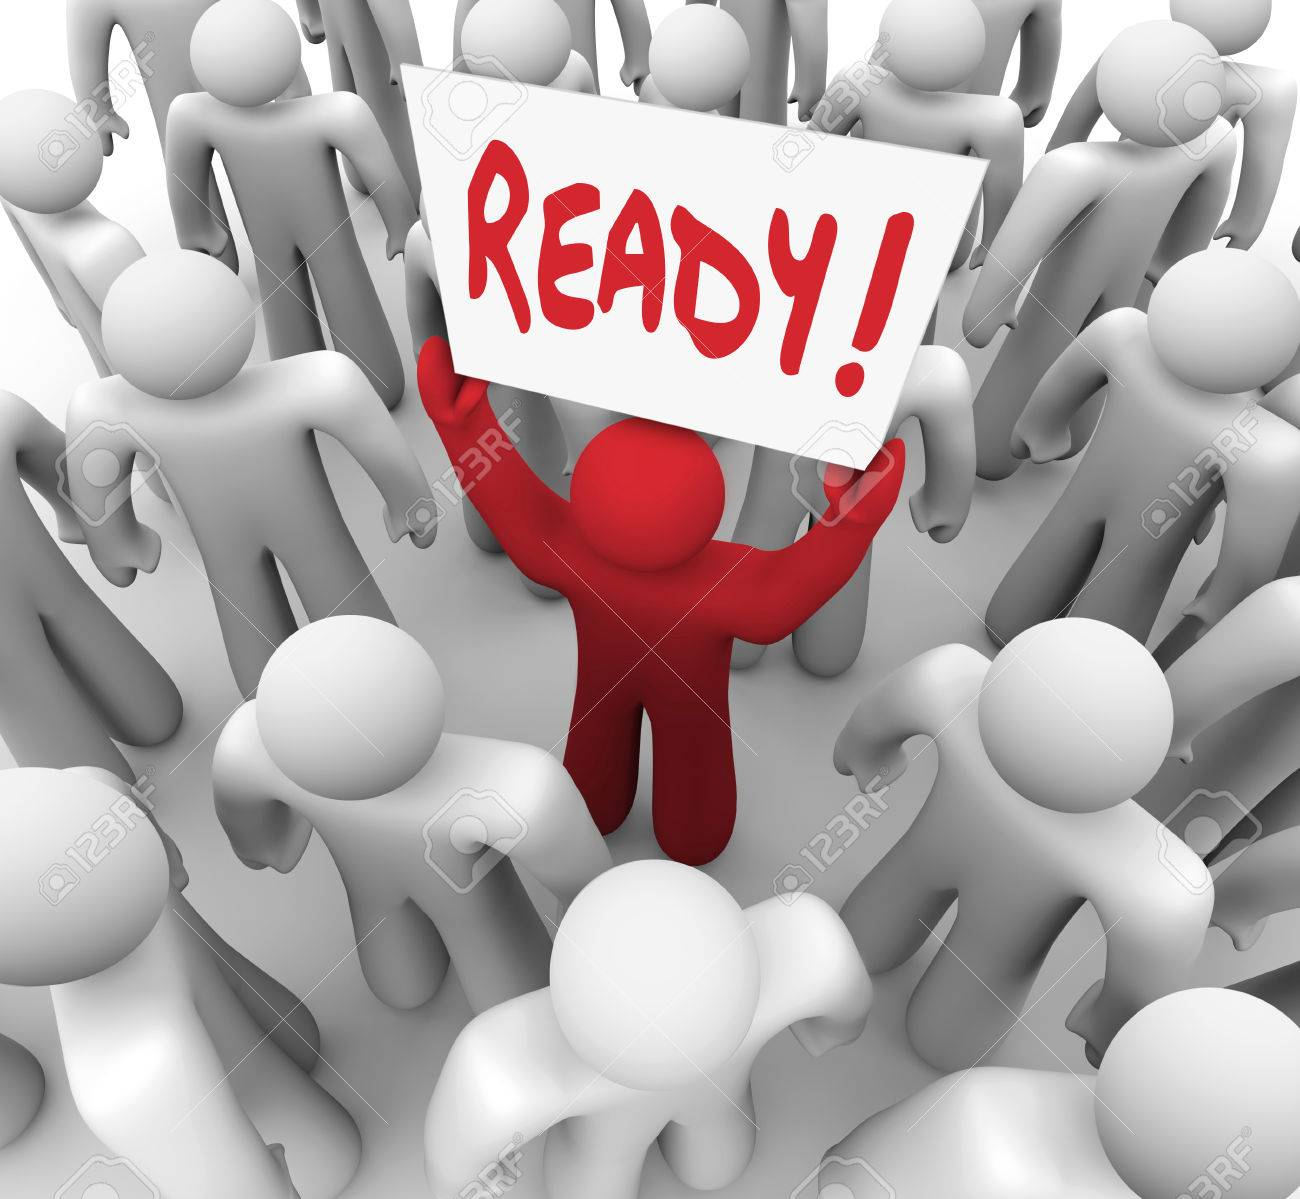 The word Ready on a sign held by a unique red person in a crowd to illustrate being prepared for a test or embark on a journey or challenge Stock Photo - 23173235